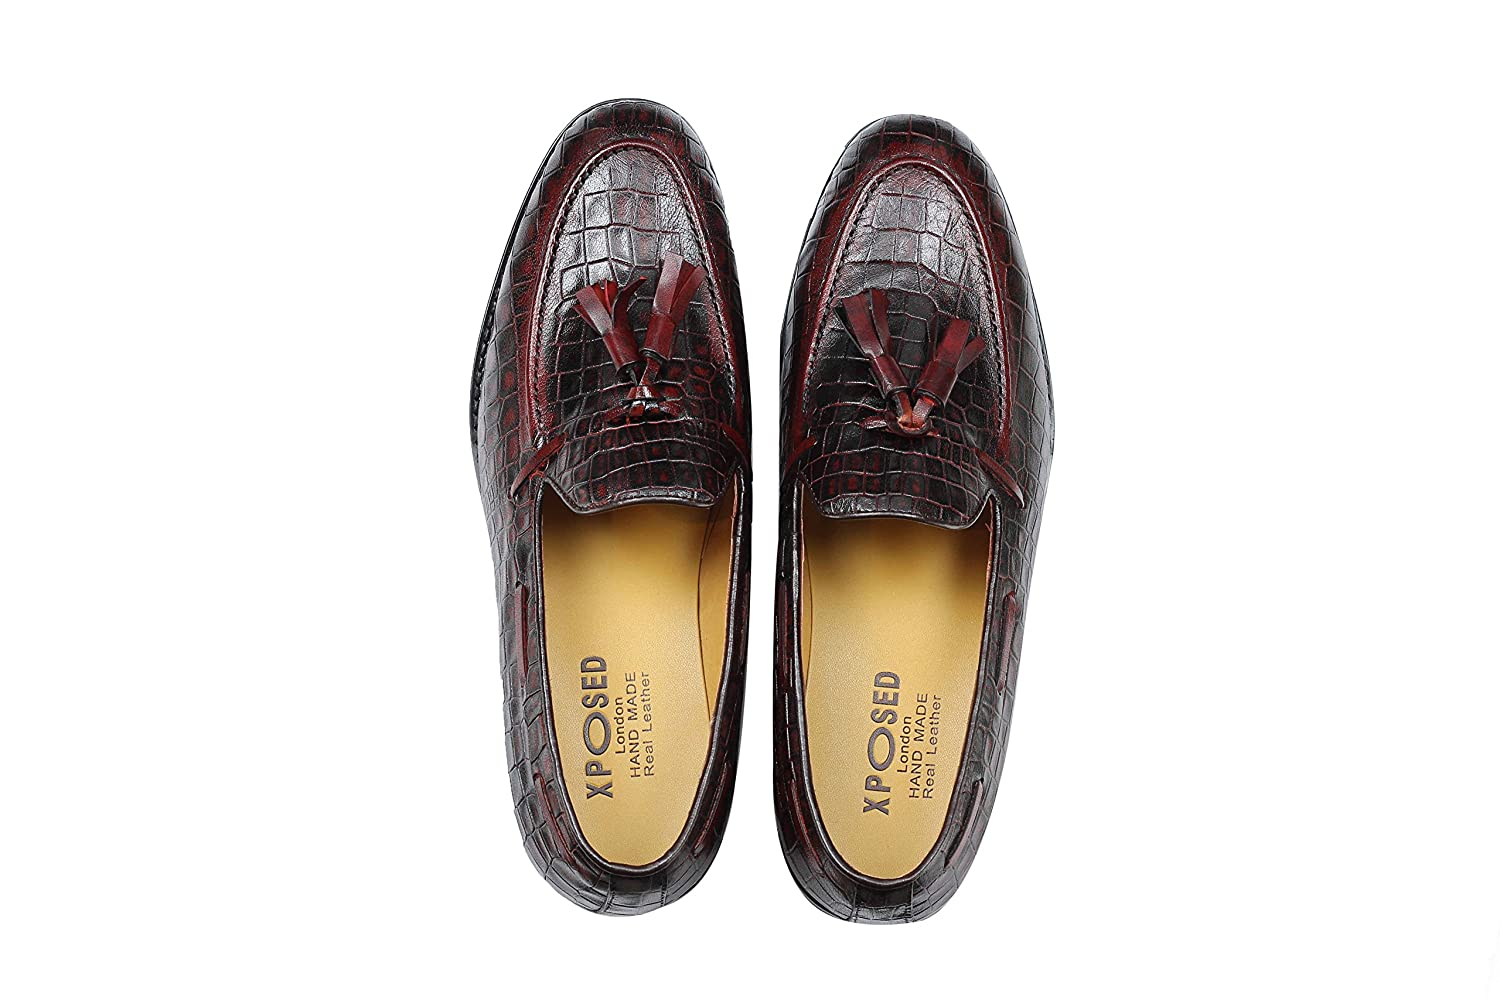 d469a76ac62 Xposed Mens Woven Look Real Leather Red Maroon Tassel Loafers Smart Casual  Formal Slip on Dress Shoes  Amazon.co.uk  Shoes   Bags